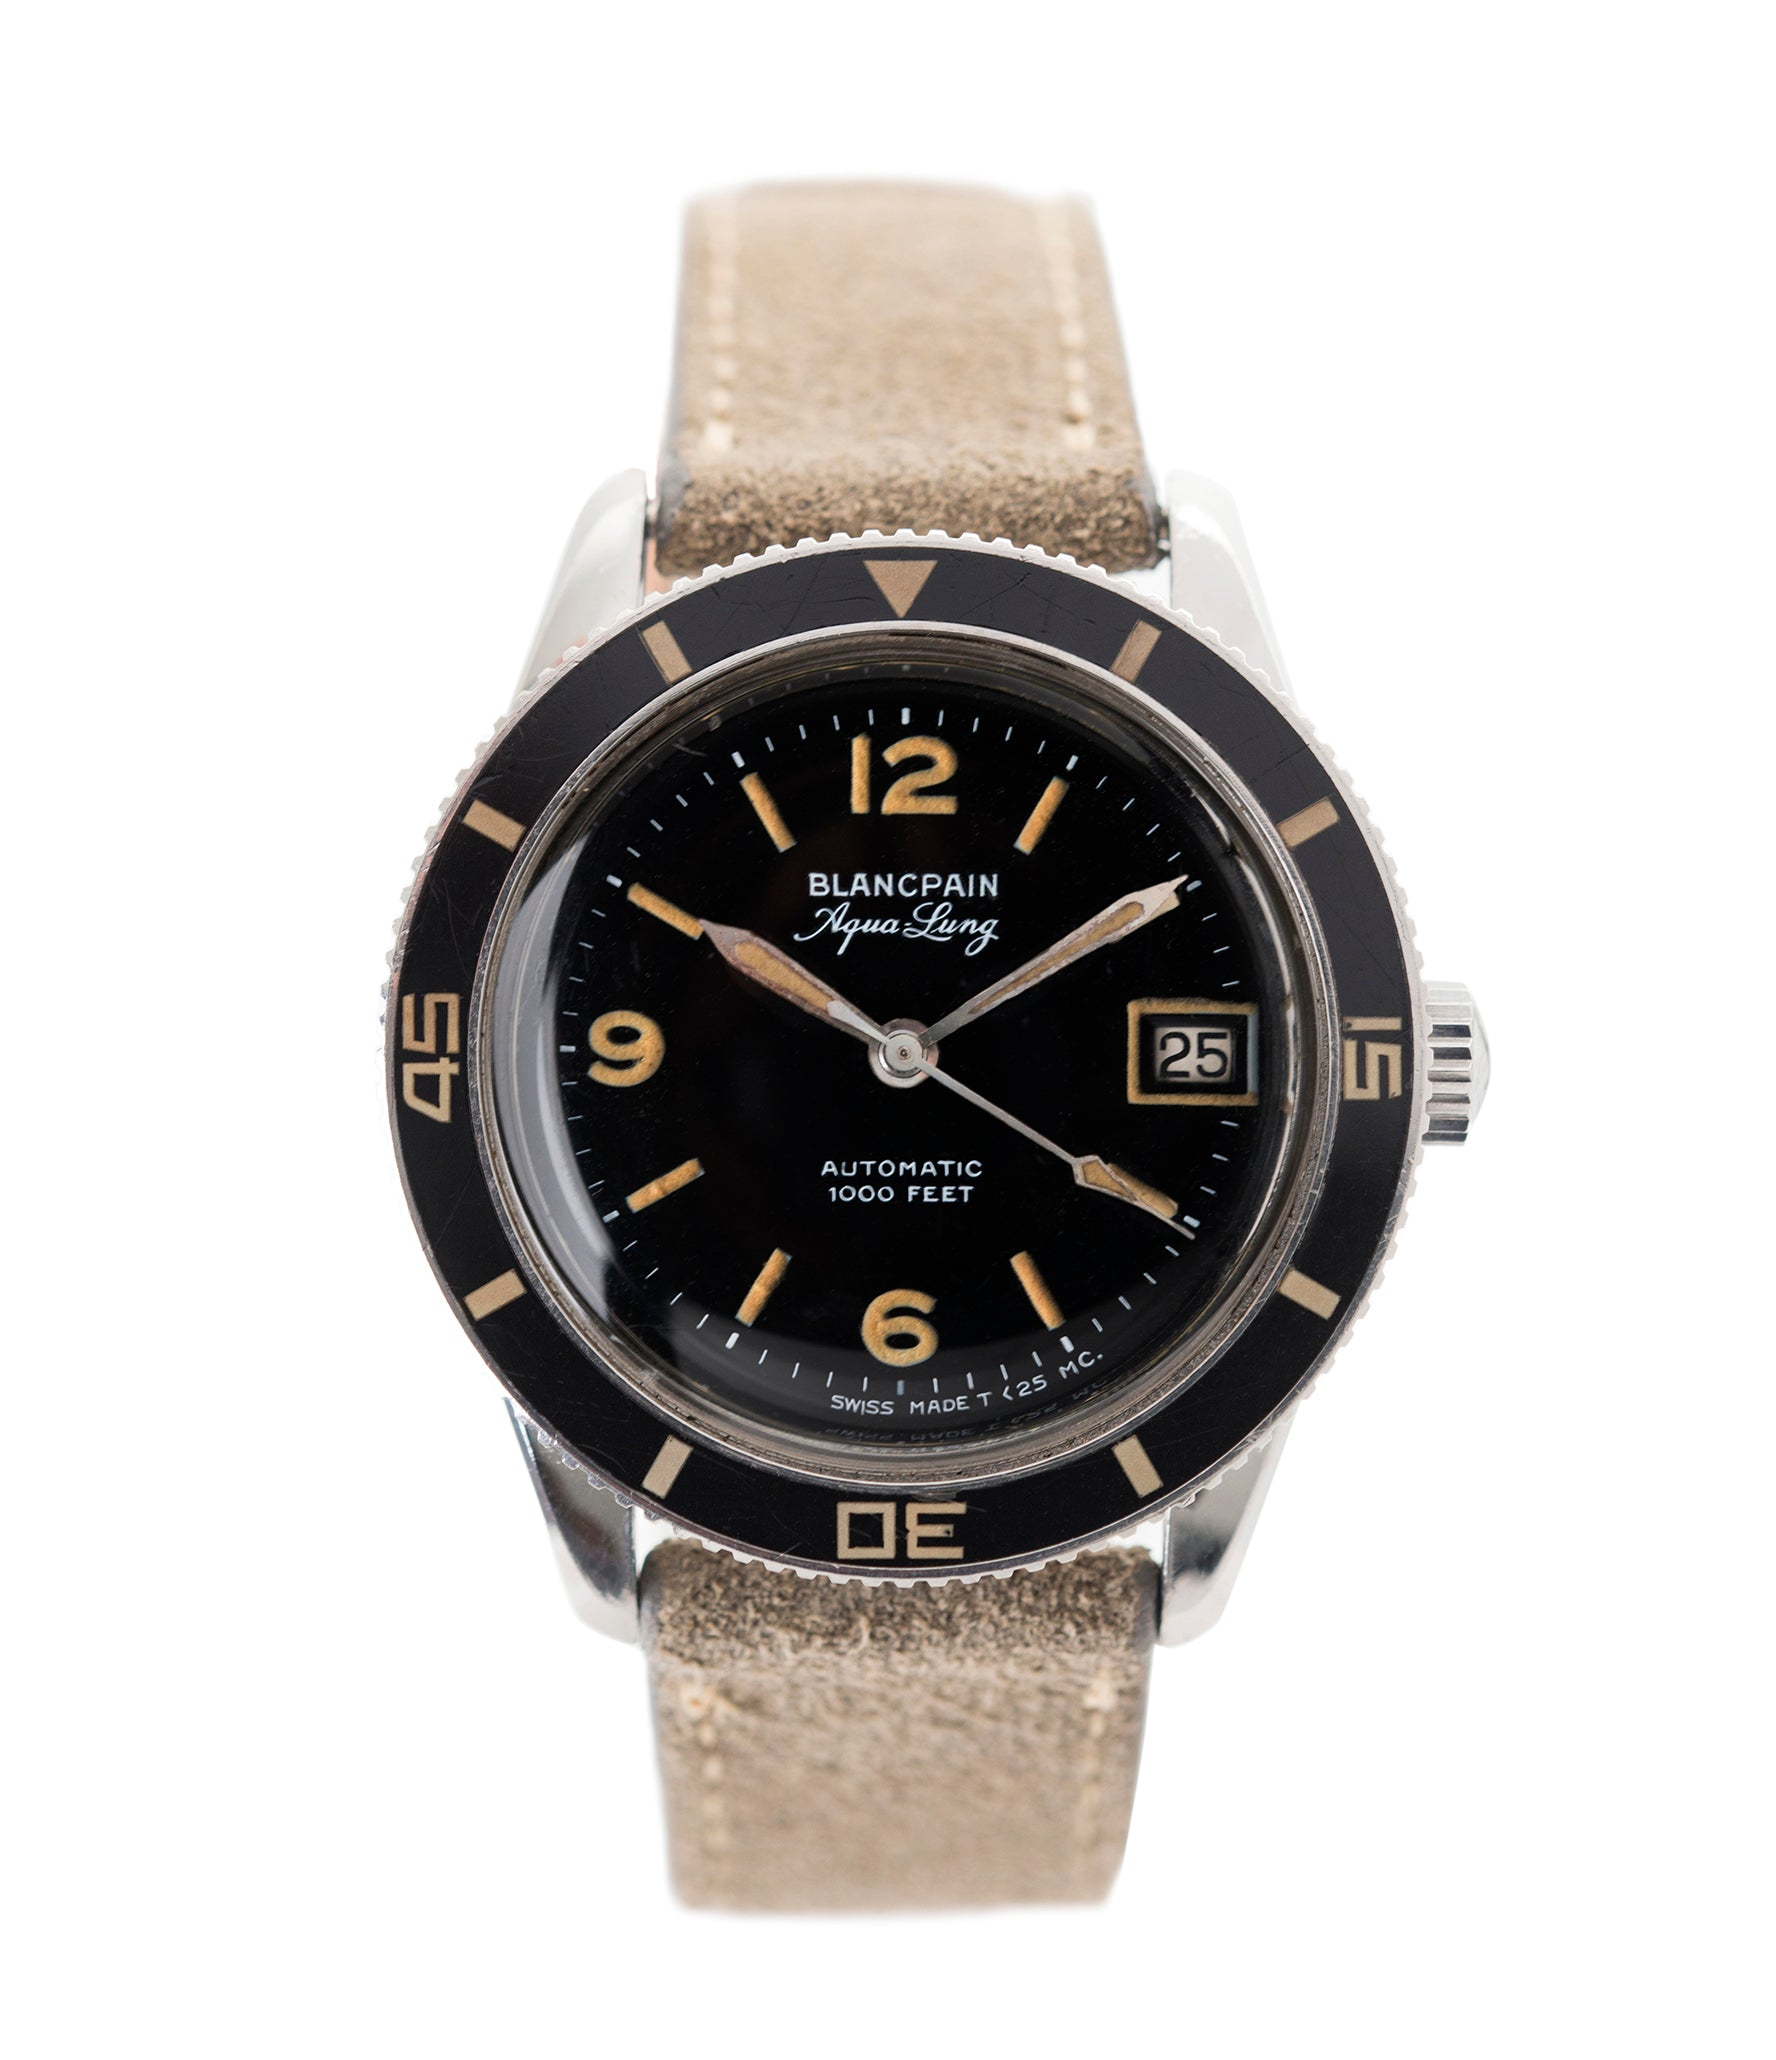 buy Blancpain Fifty Fathoms Aqua Lung Gloss Dial Bakelite bezel Cal. AS 1700/01 vintage sport watch black dial for sale online at A Collected Man London UK specialist rare, vintage watches